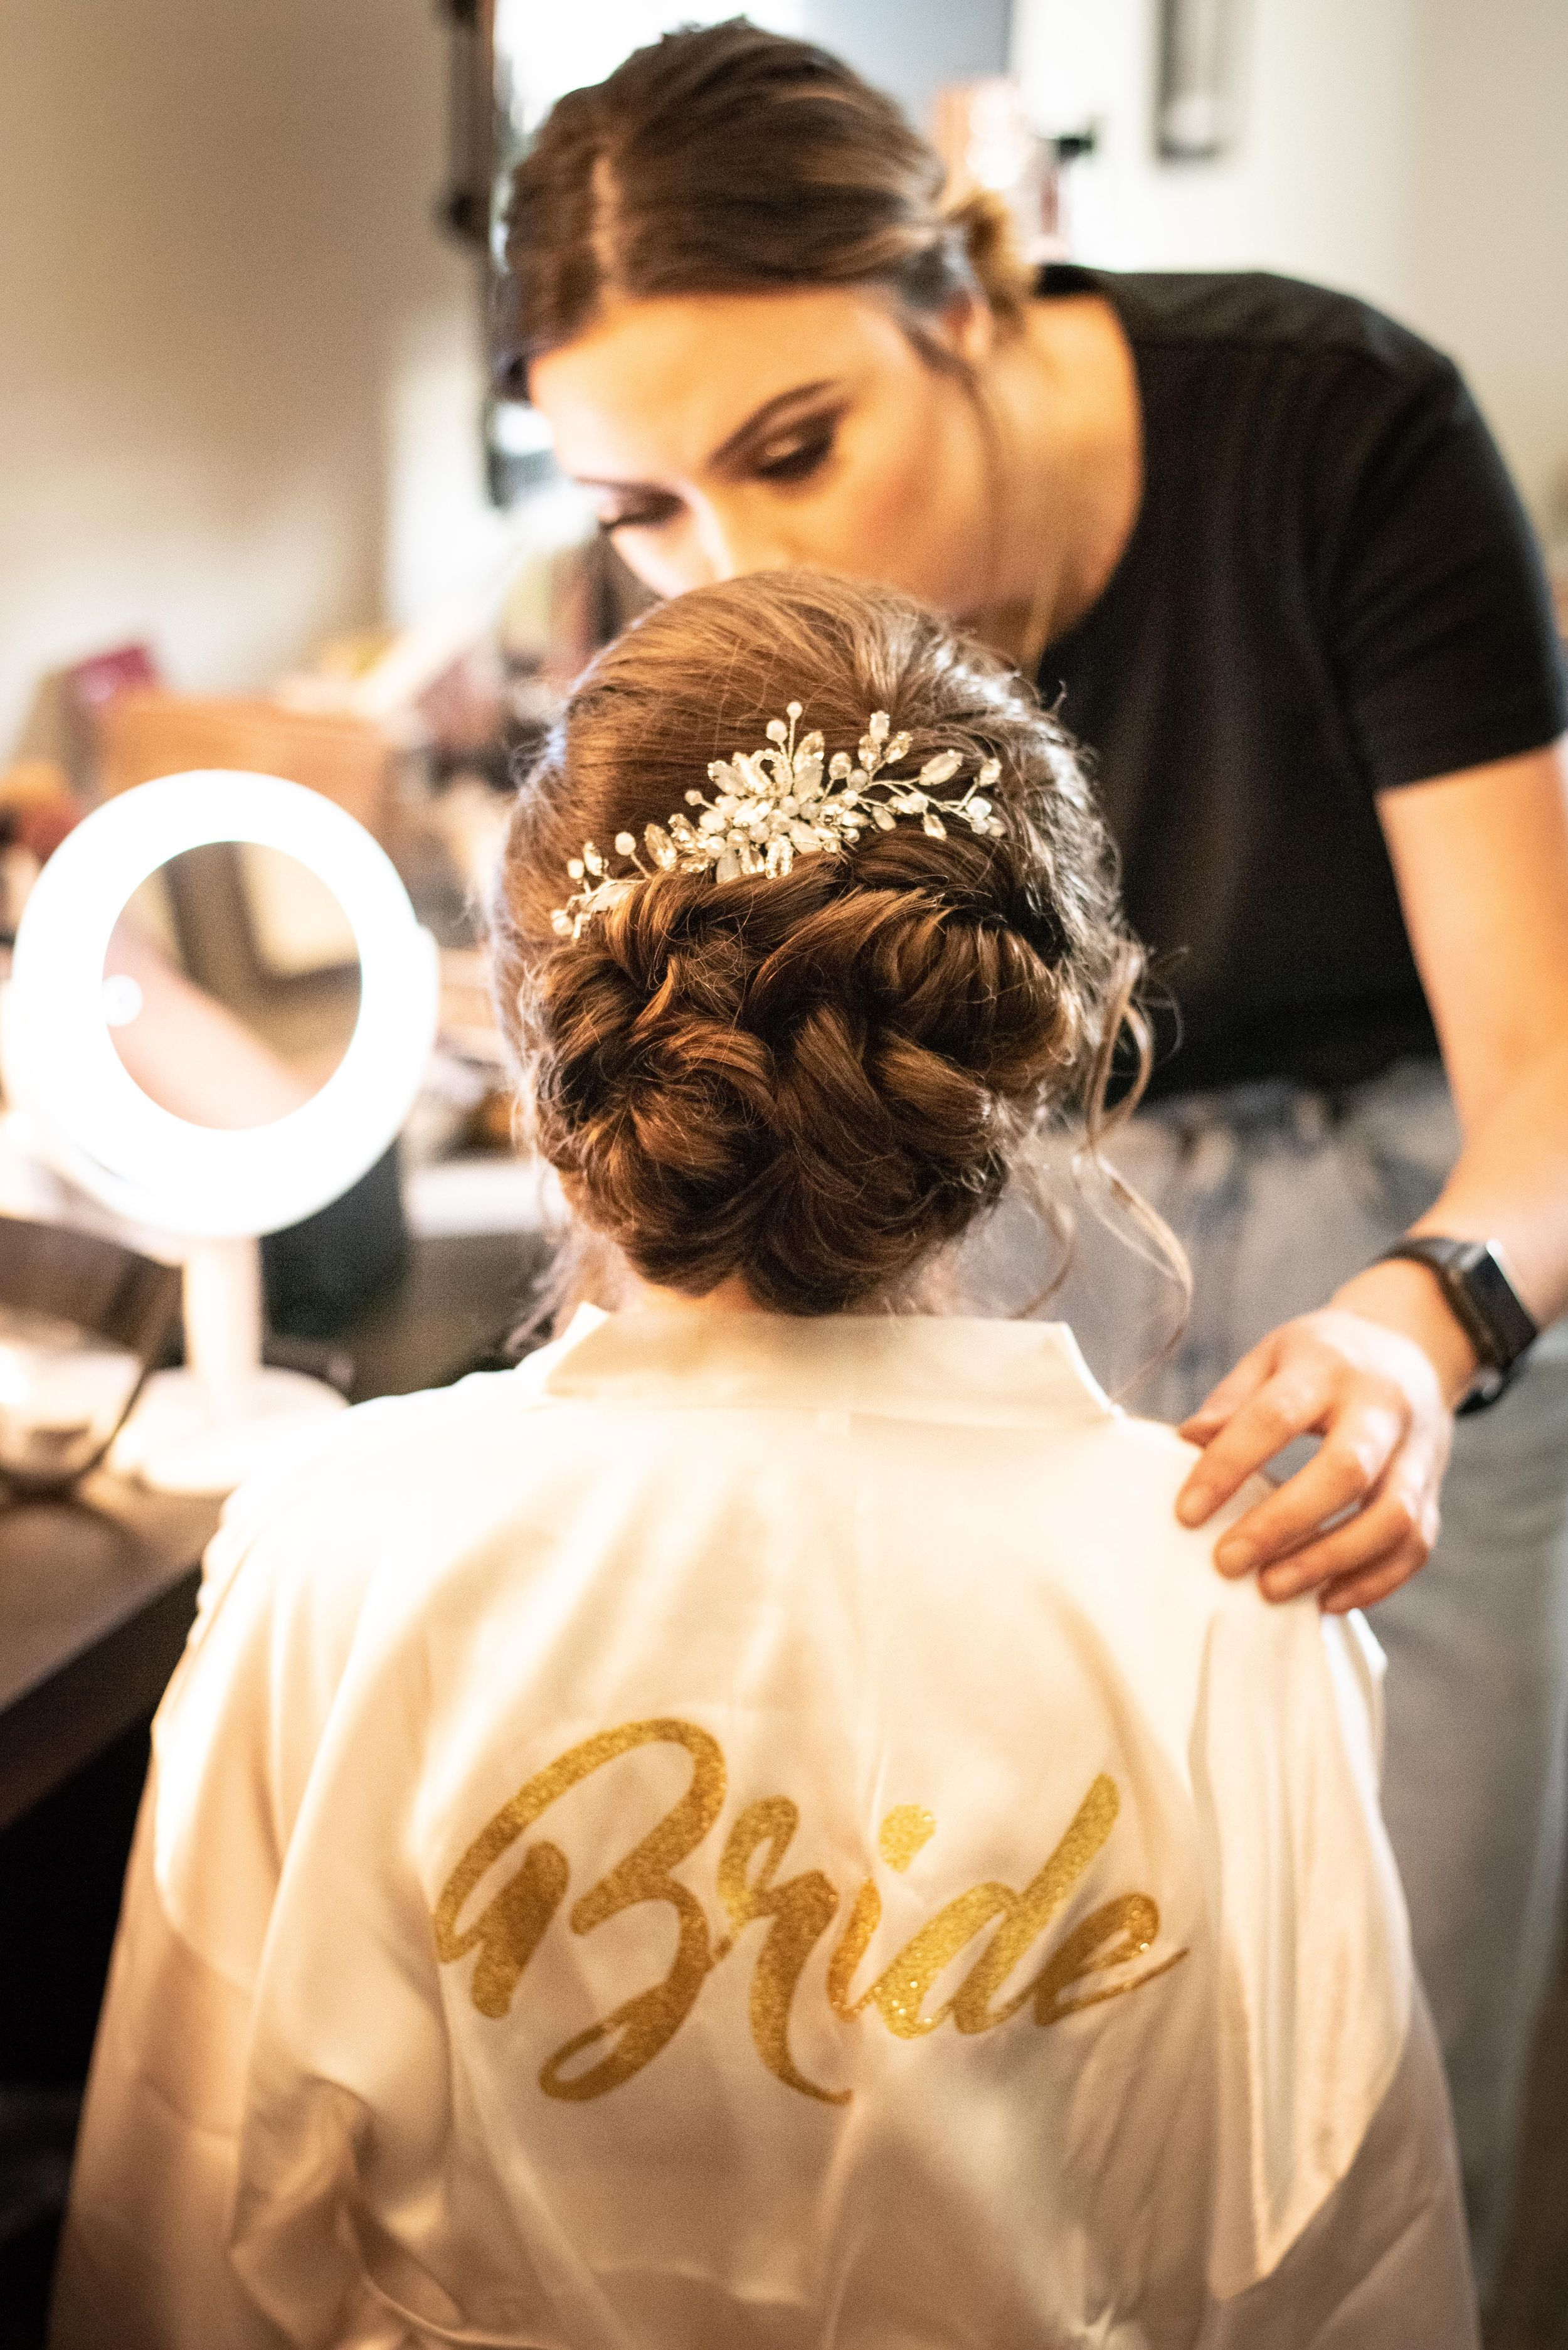 bride getting ready for wedding in robe